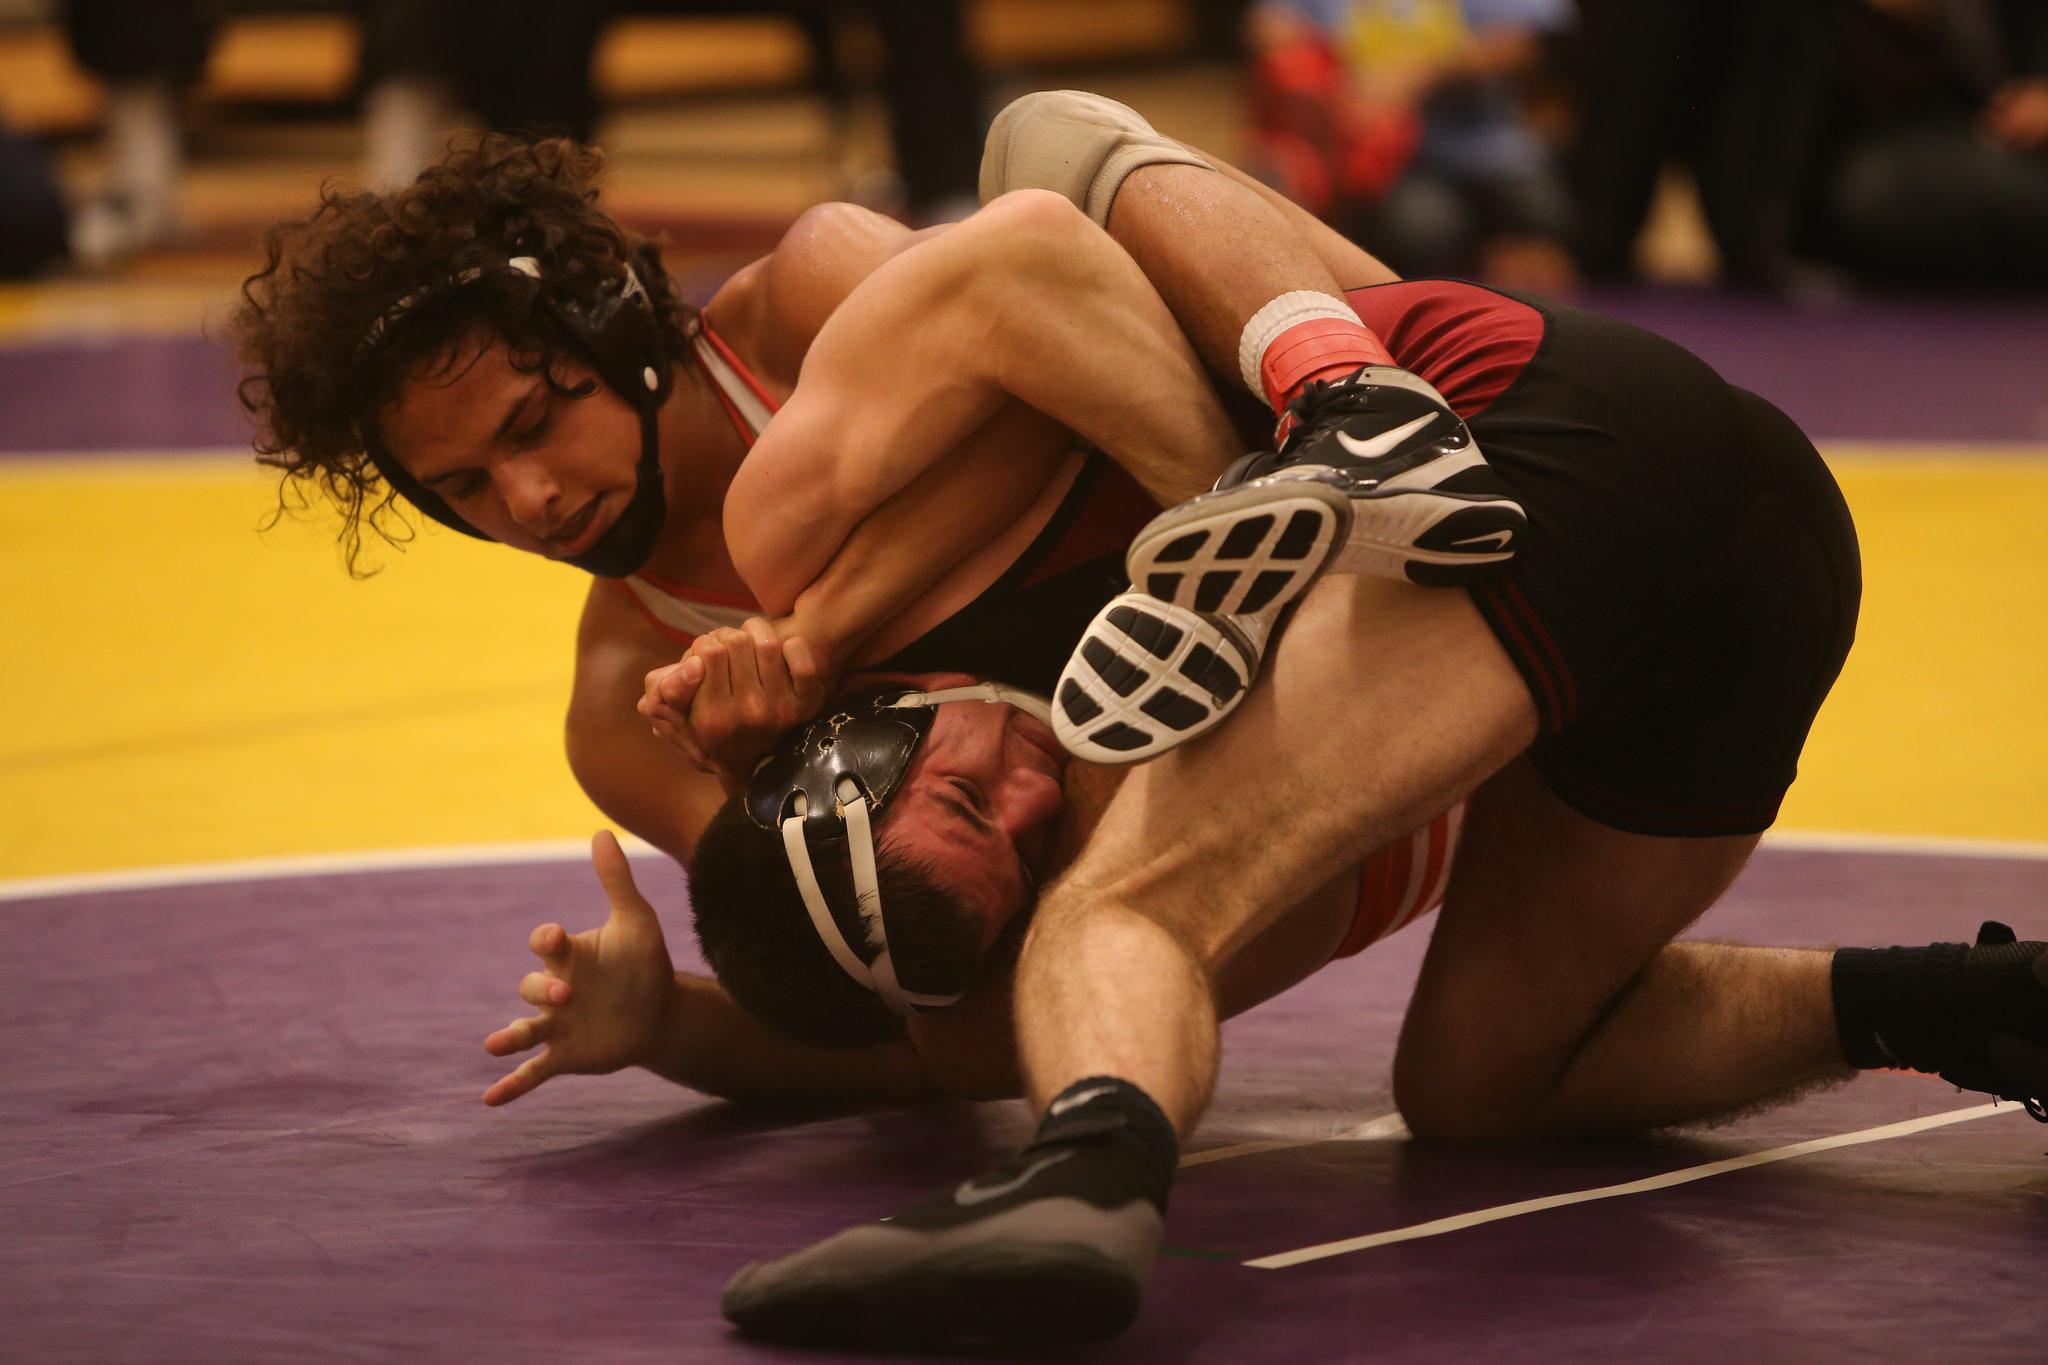 SF State wrestling team starts strong at JC Open